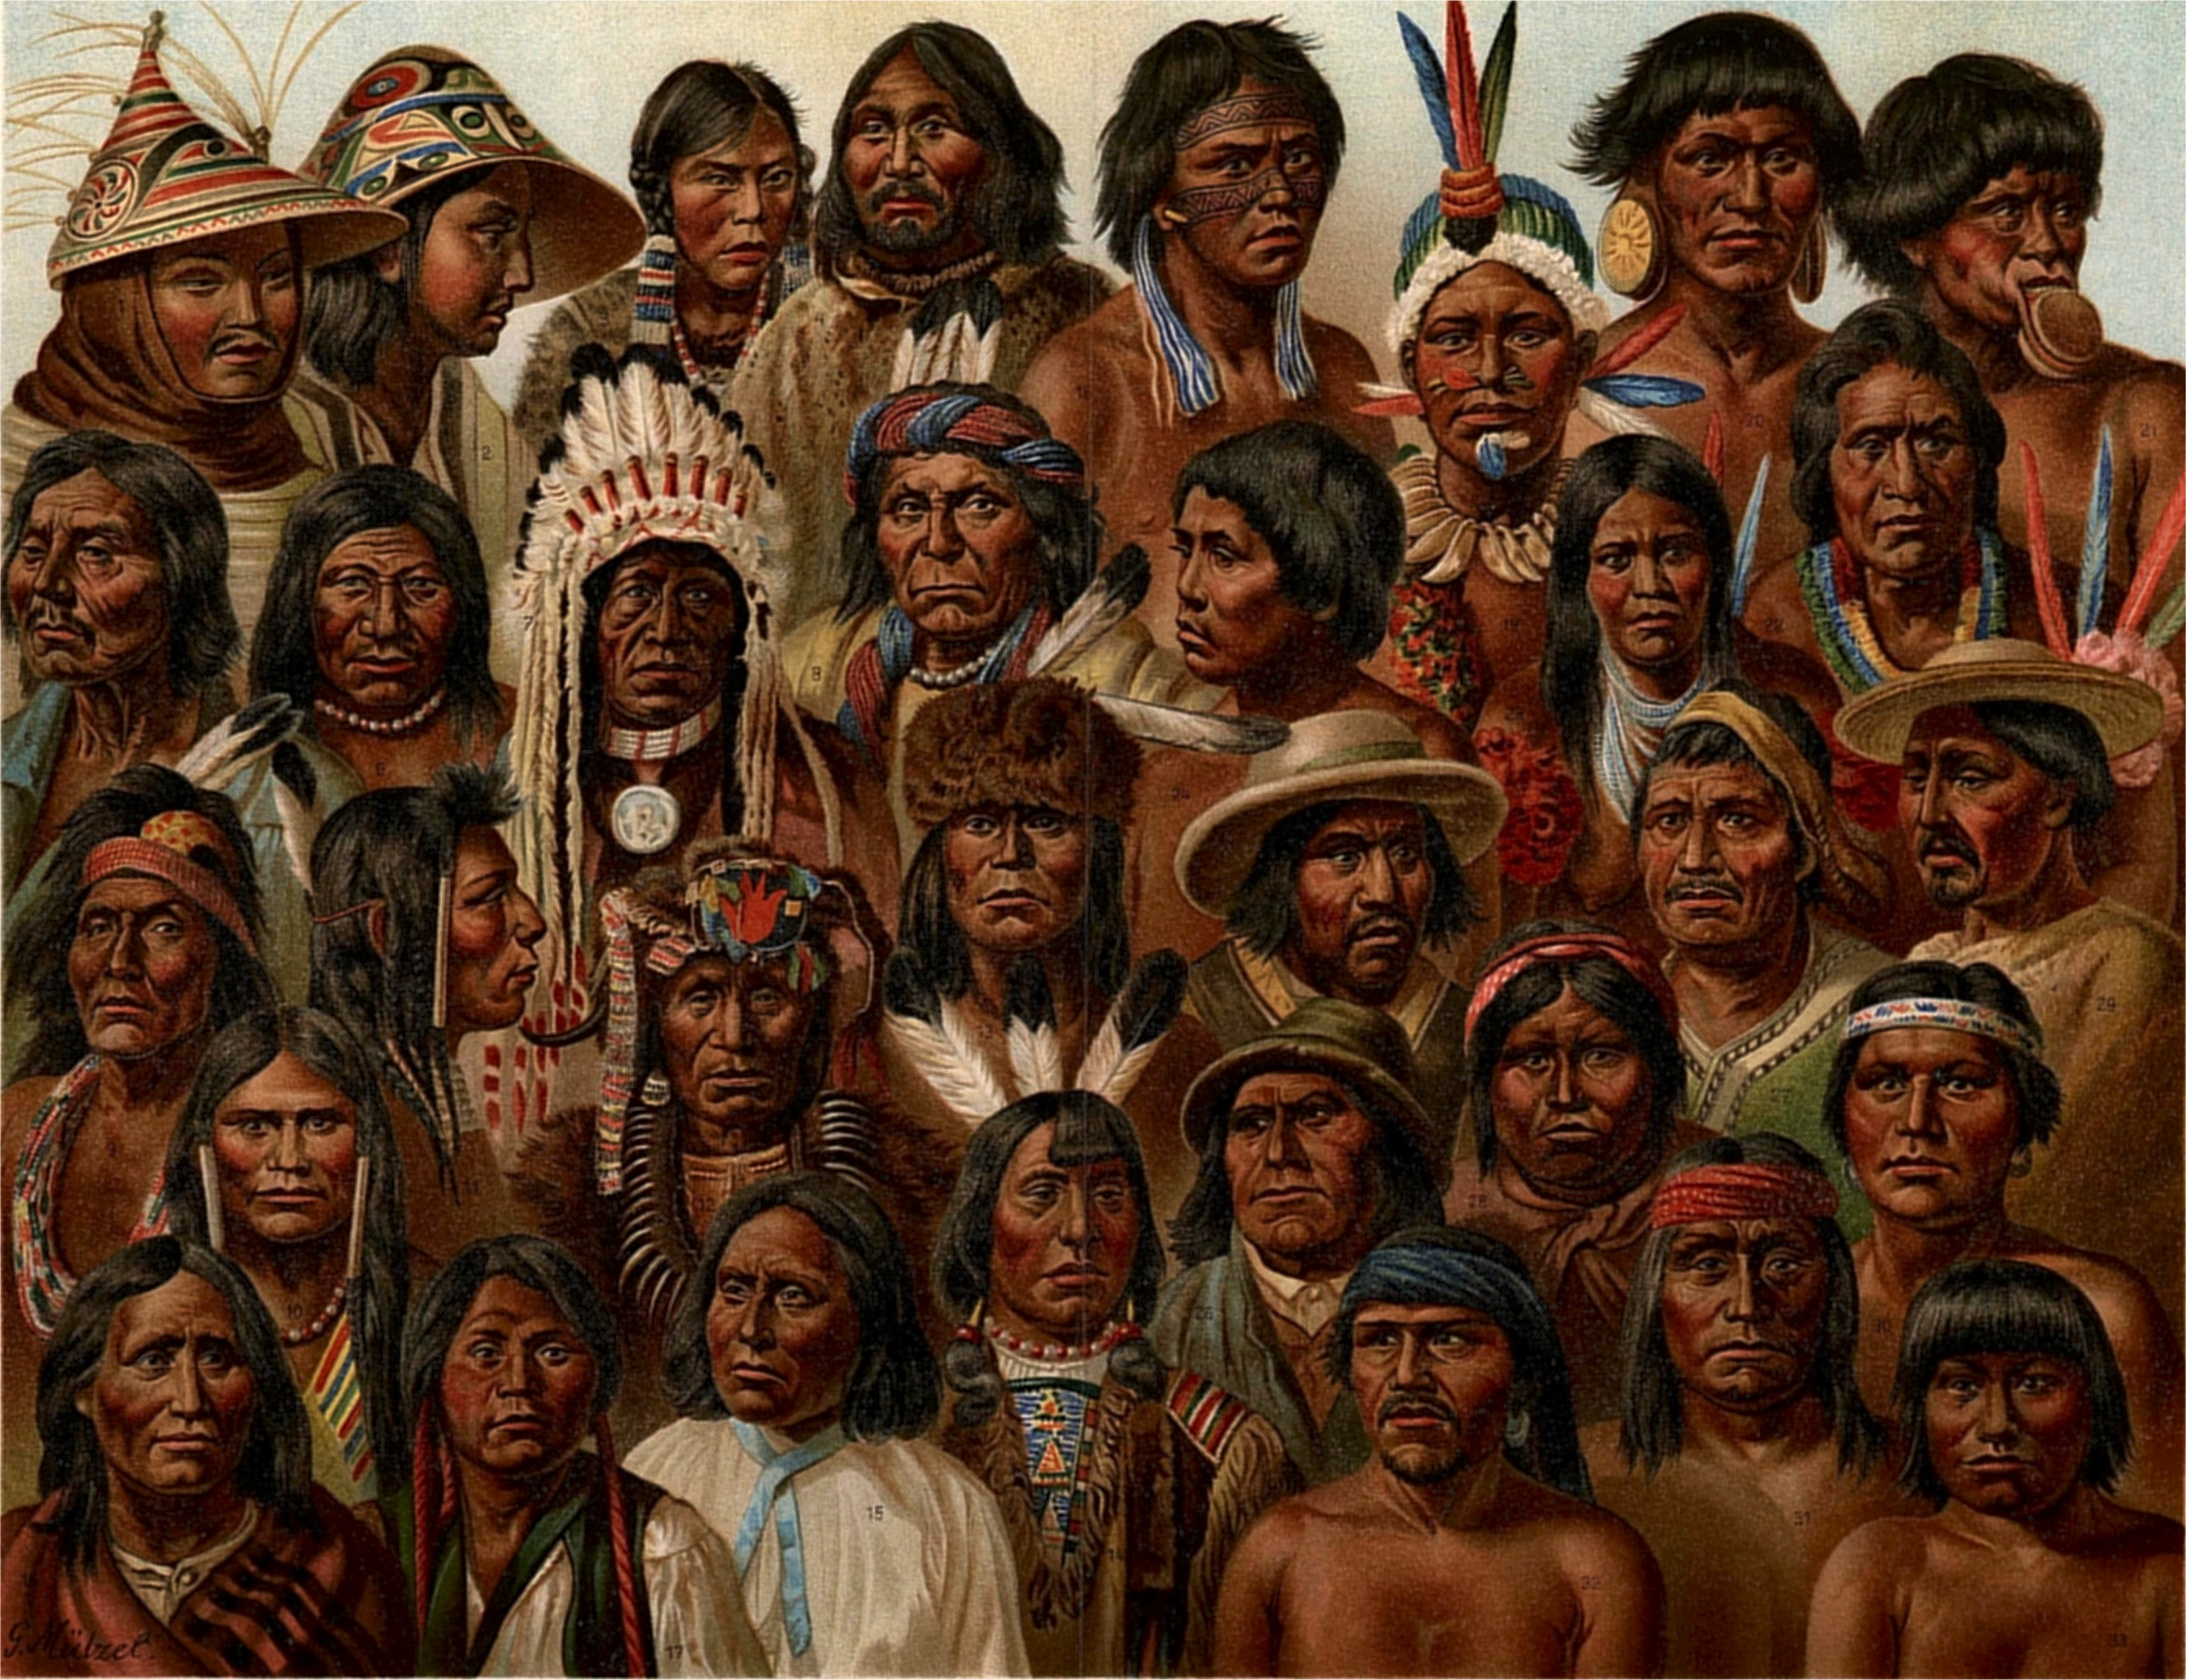 Puebloan peoples